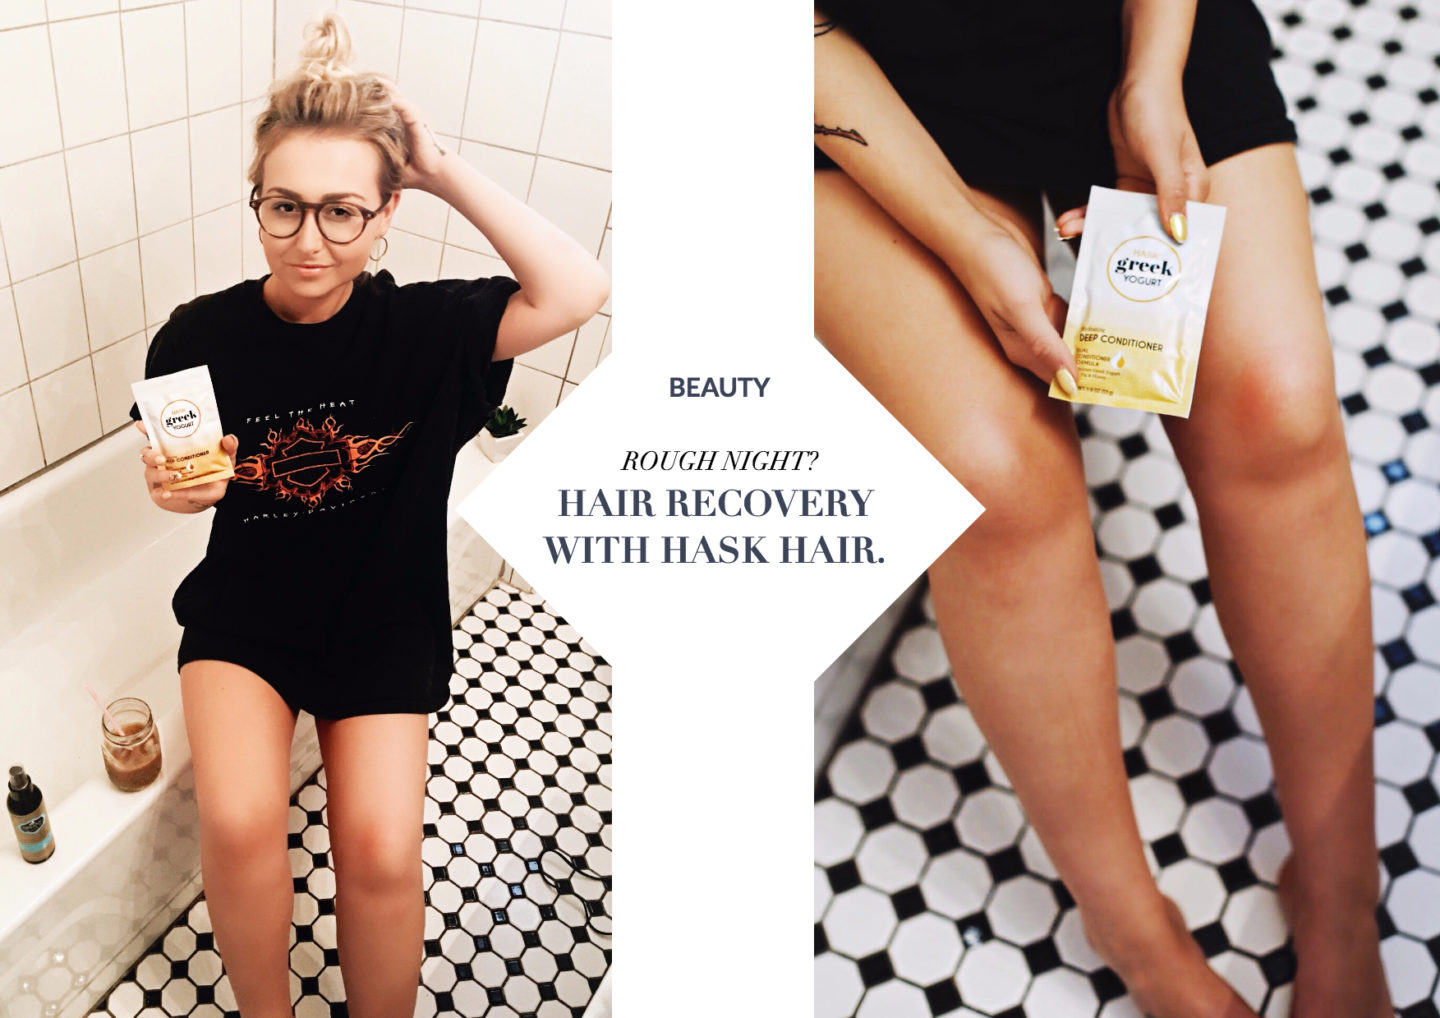 HAIR RECOVERY WITH HASK.